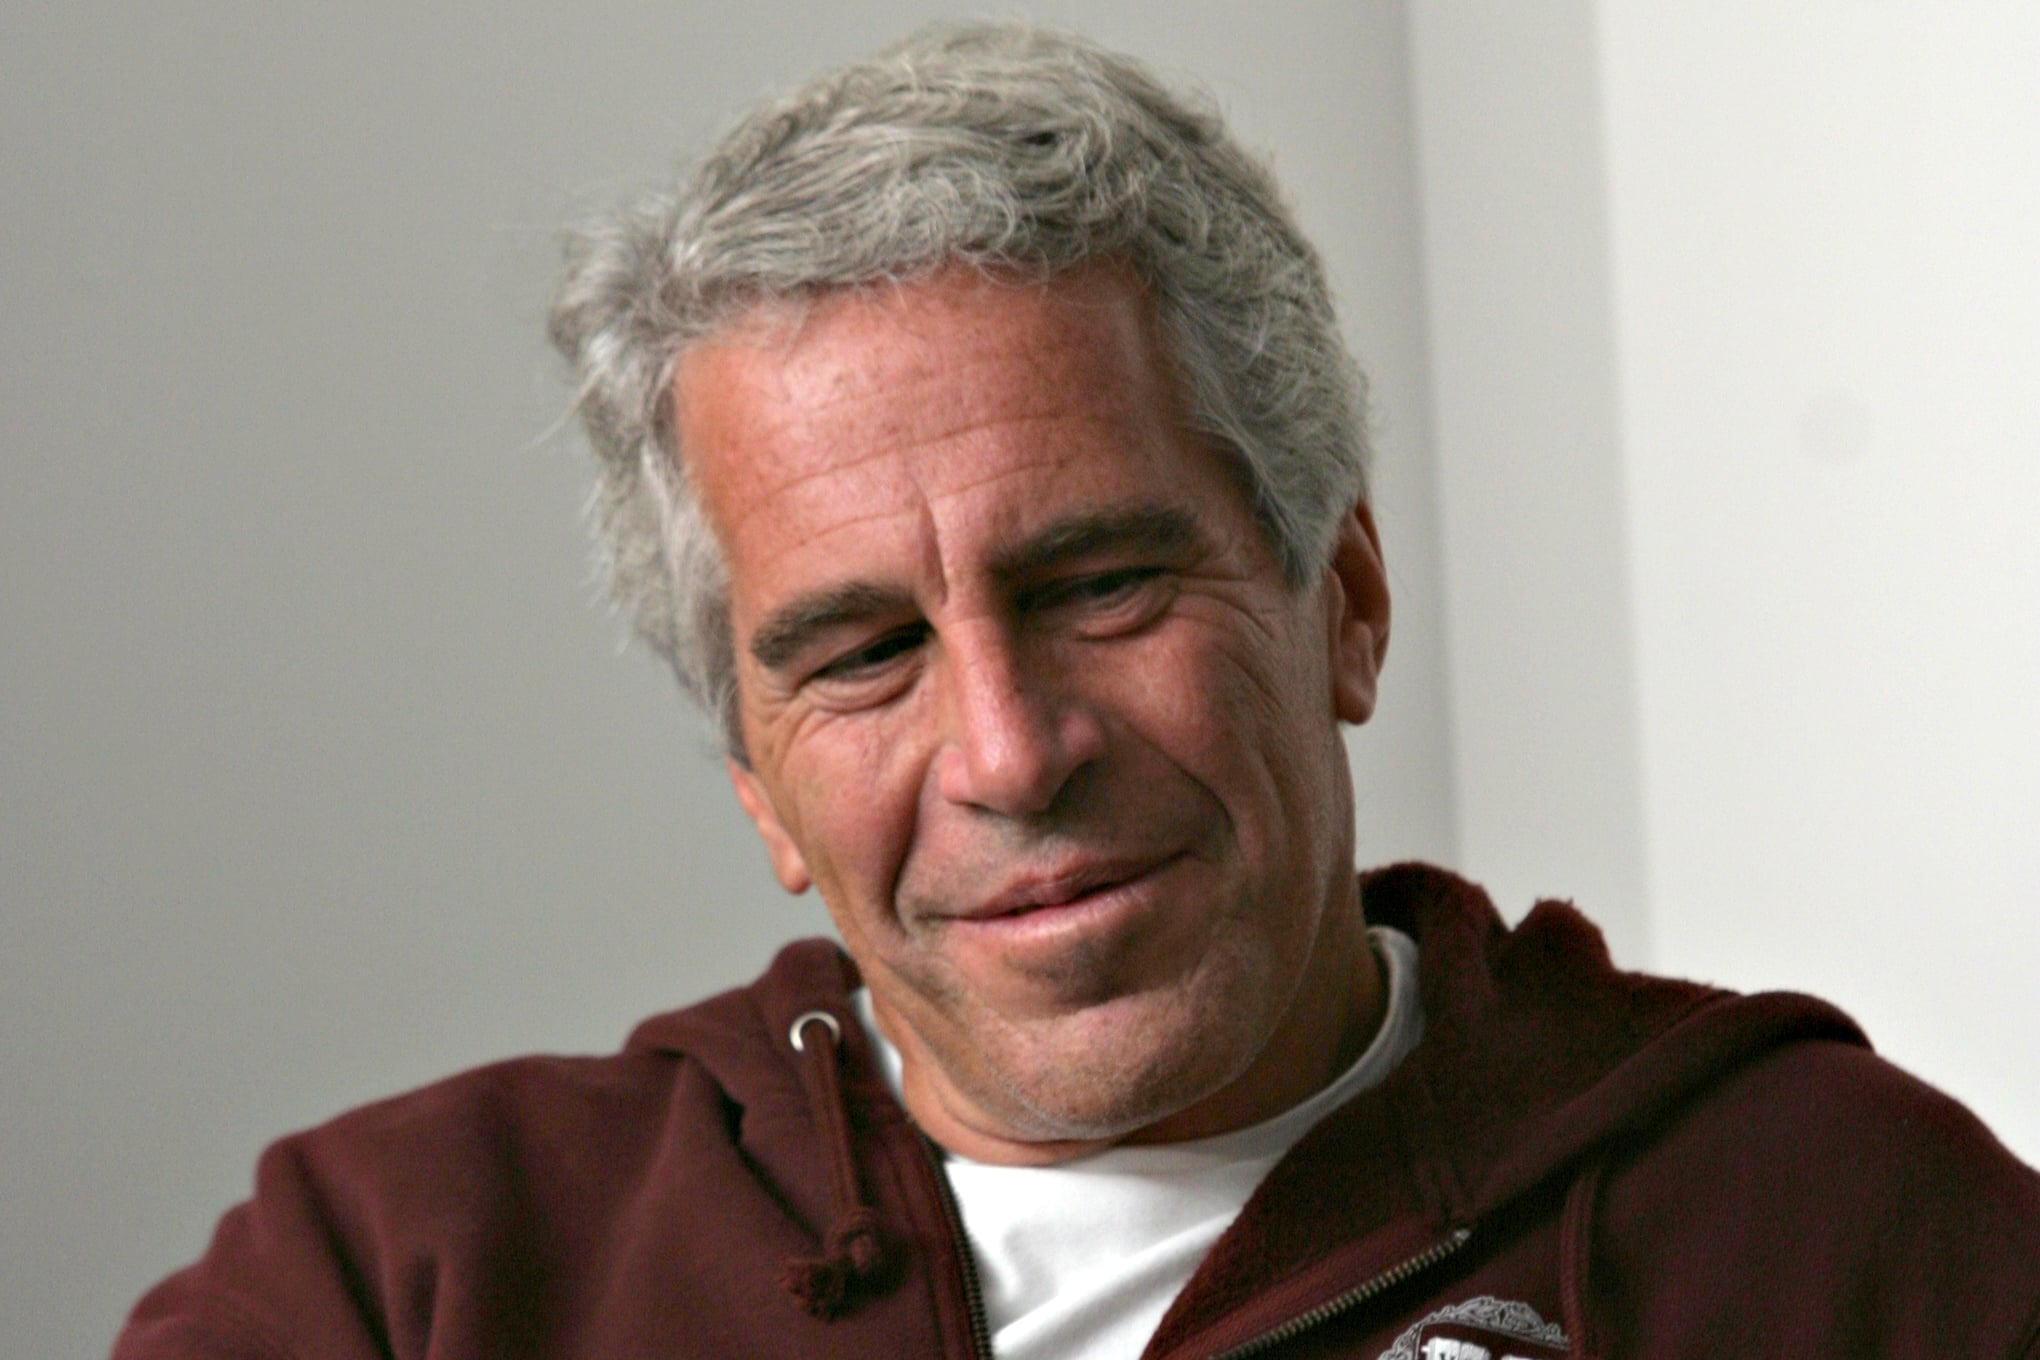 Billionaire Jeffrey Epstein in Cambridge, MA on 9/8/04. Epstein is connected with several prominent people including politicians, actors and academics. Epstein was convicted of having sex with an underaged woman. (Photo by Rick Friedman/Rick Friedman Photography/Corbis via Getty Images)